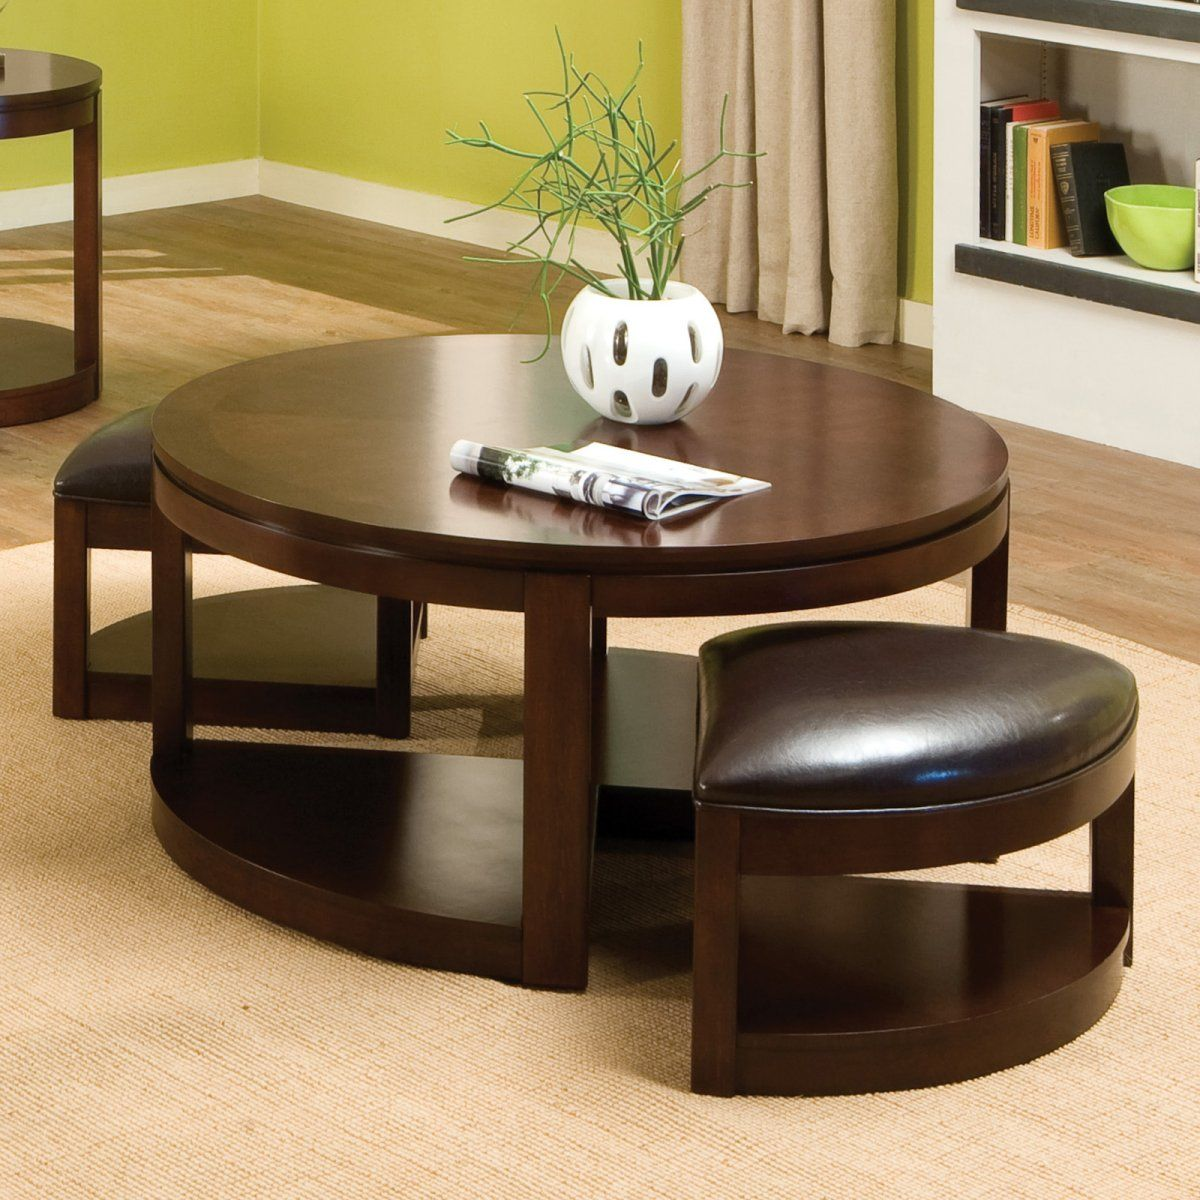 Alluring Round Coffee Table Idea With Round Wood Top And Wood Base